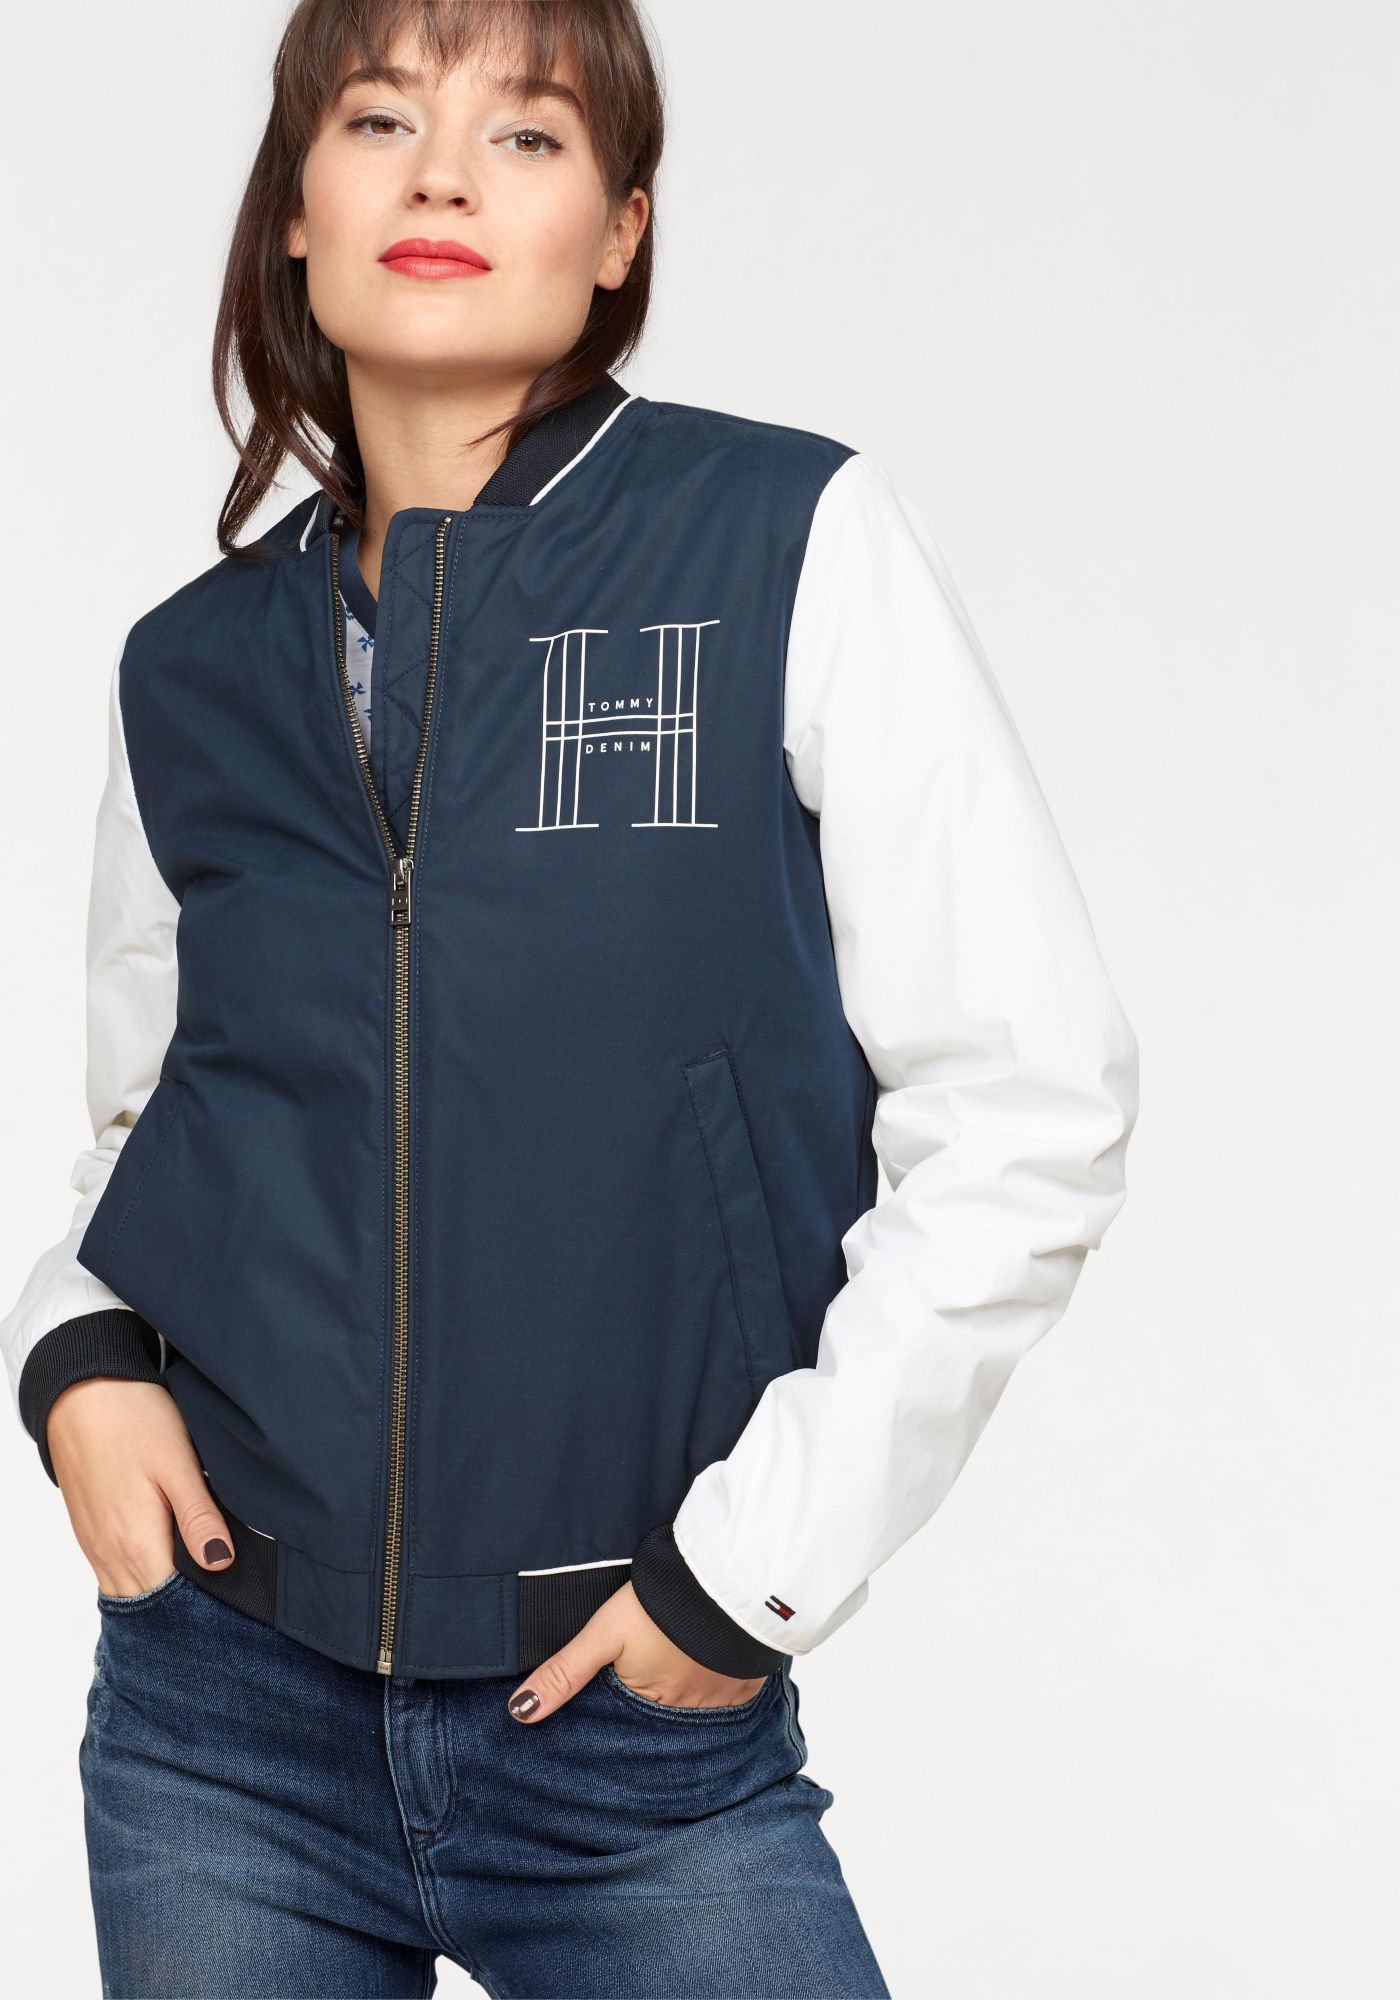 HILFIGER DENIM Hilfiger Denim Collegejacke